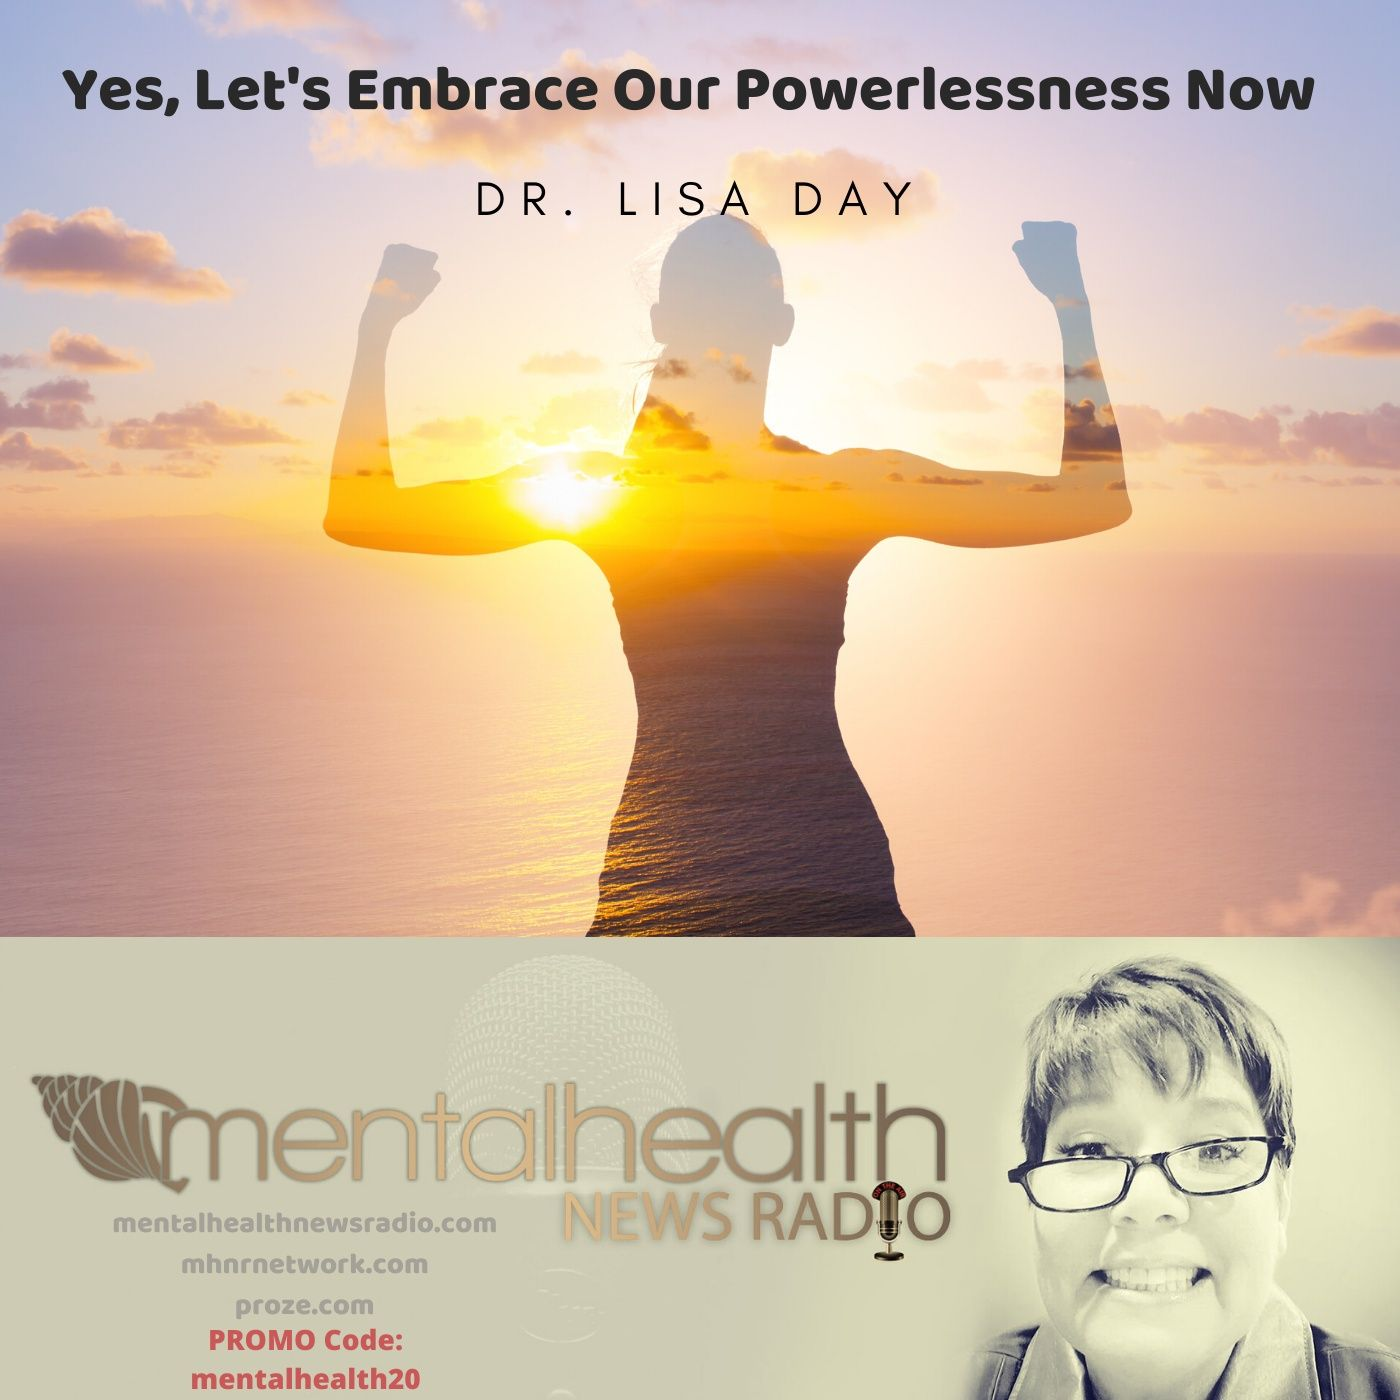 Mental Health News Radio - Yes, Let's Embrace Our Powerlessness Now